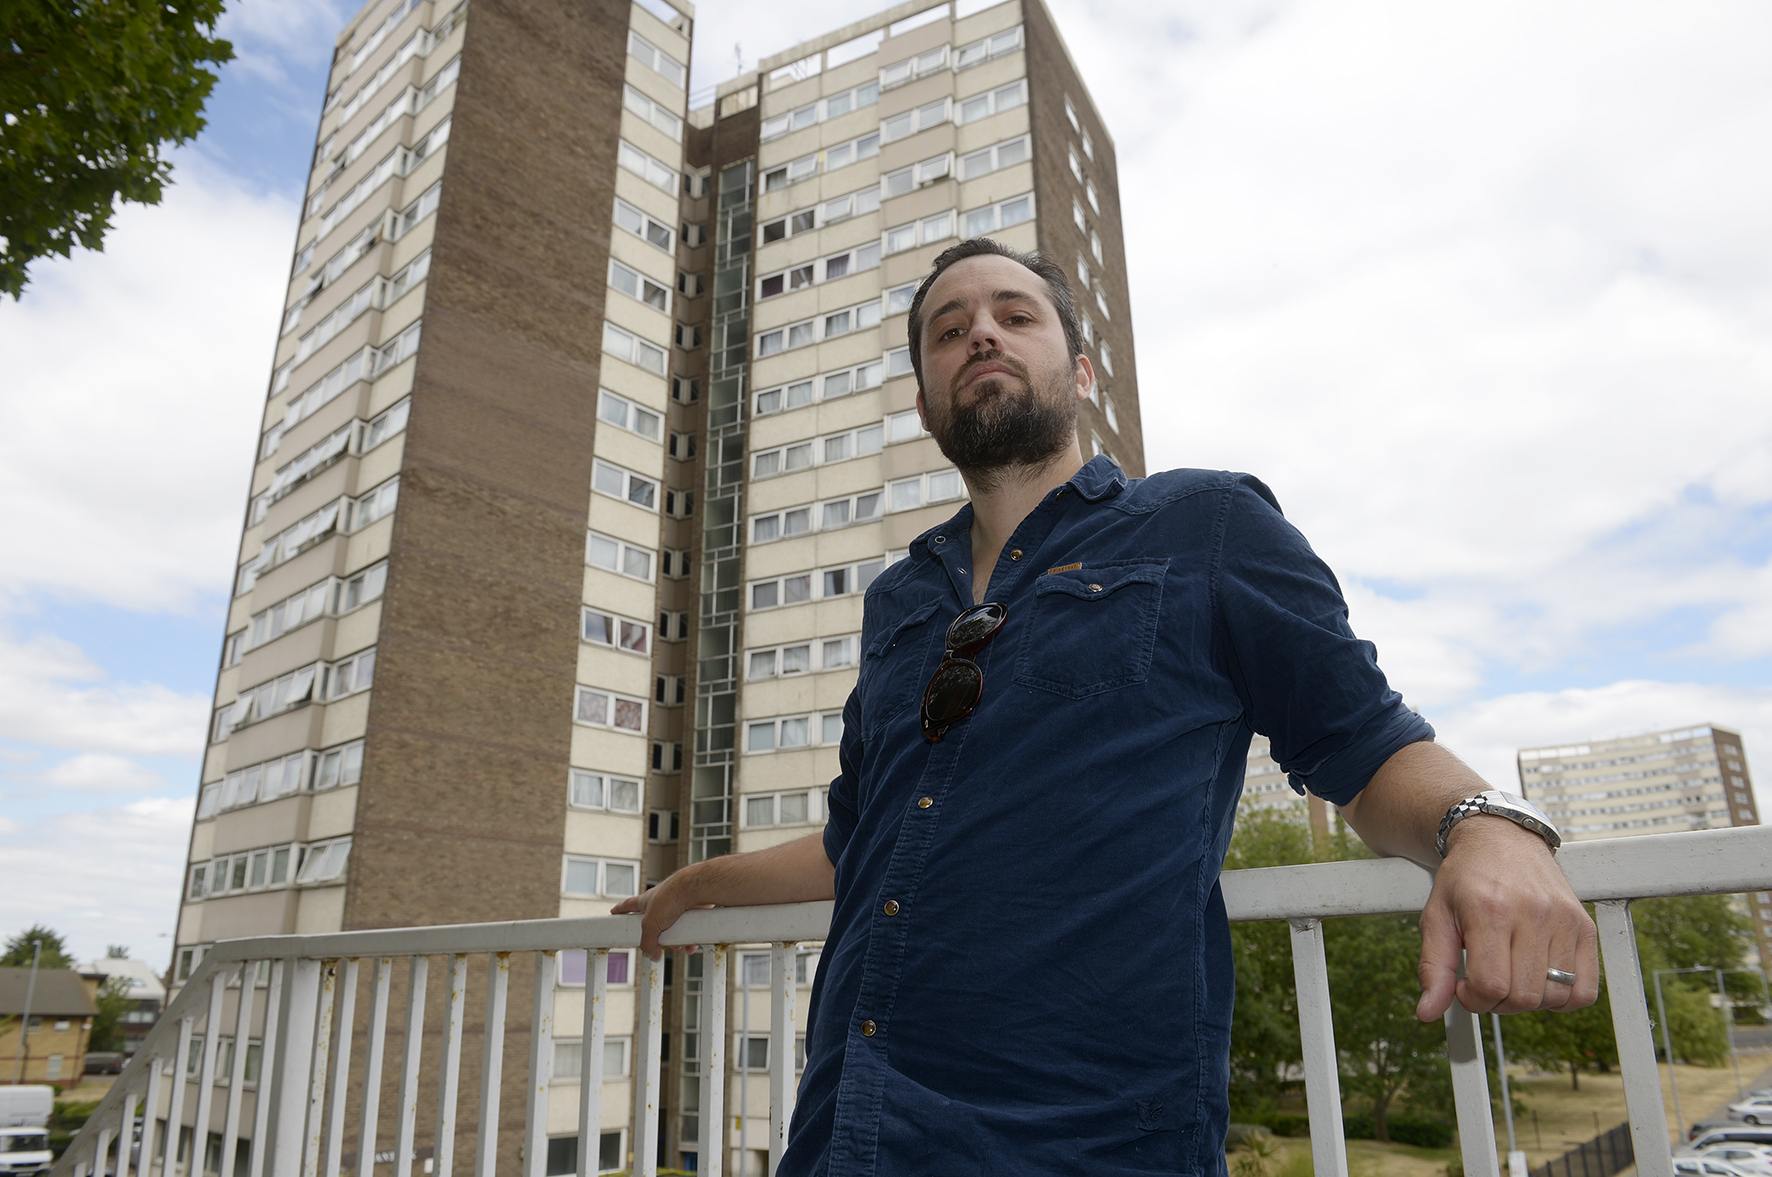 Colin Nickless .Quantock Queensway, Southend.TOWER BOCK FIRE SAFETY Southend Council and the fire service seem to be at odds over tower block safety. Southend resident Colin Nickless has been inquiring into fire safety measures in place in Southend flats.